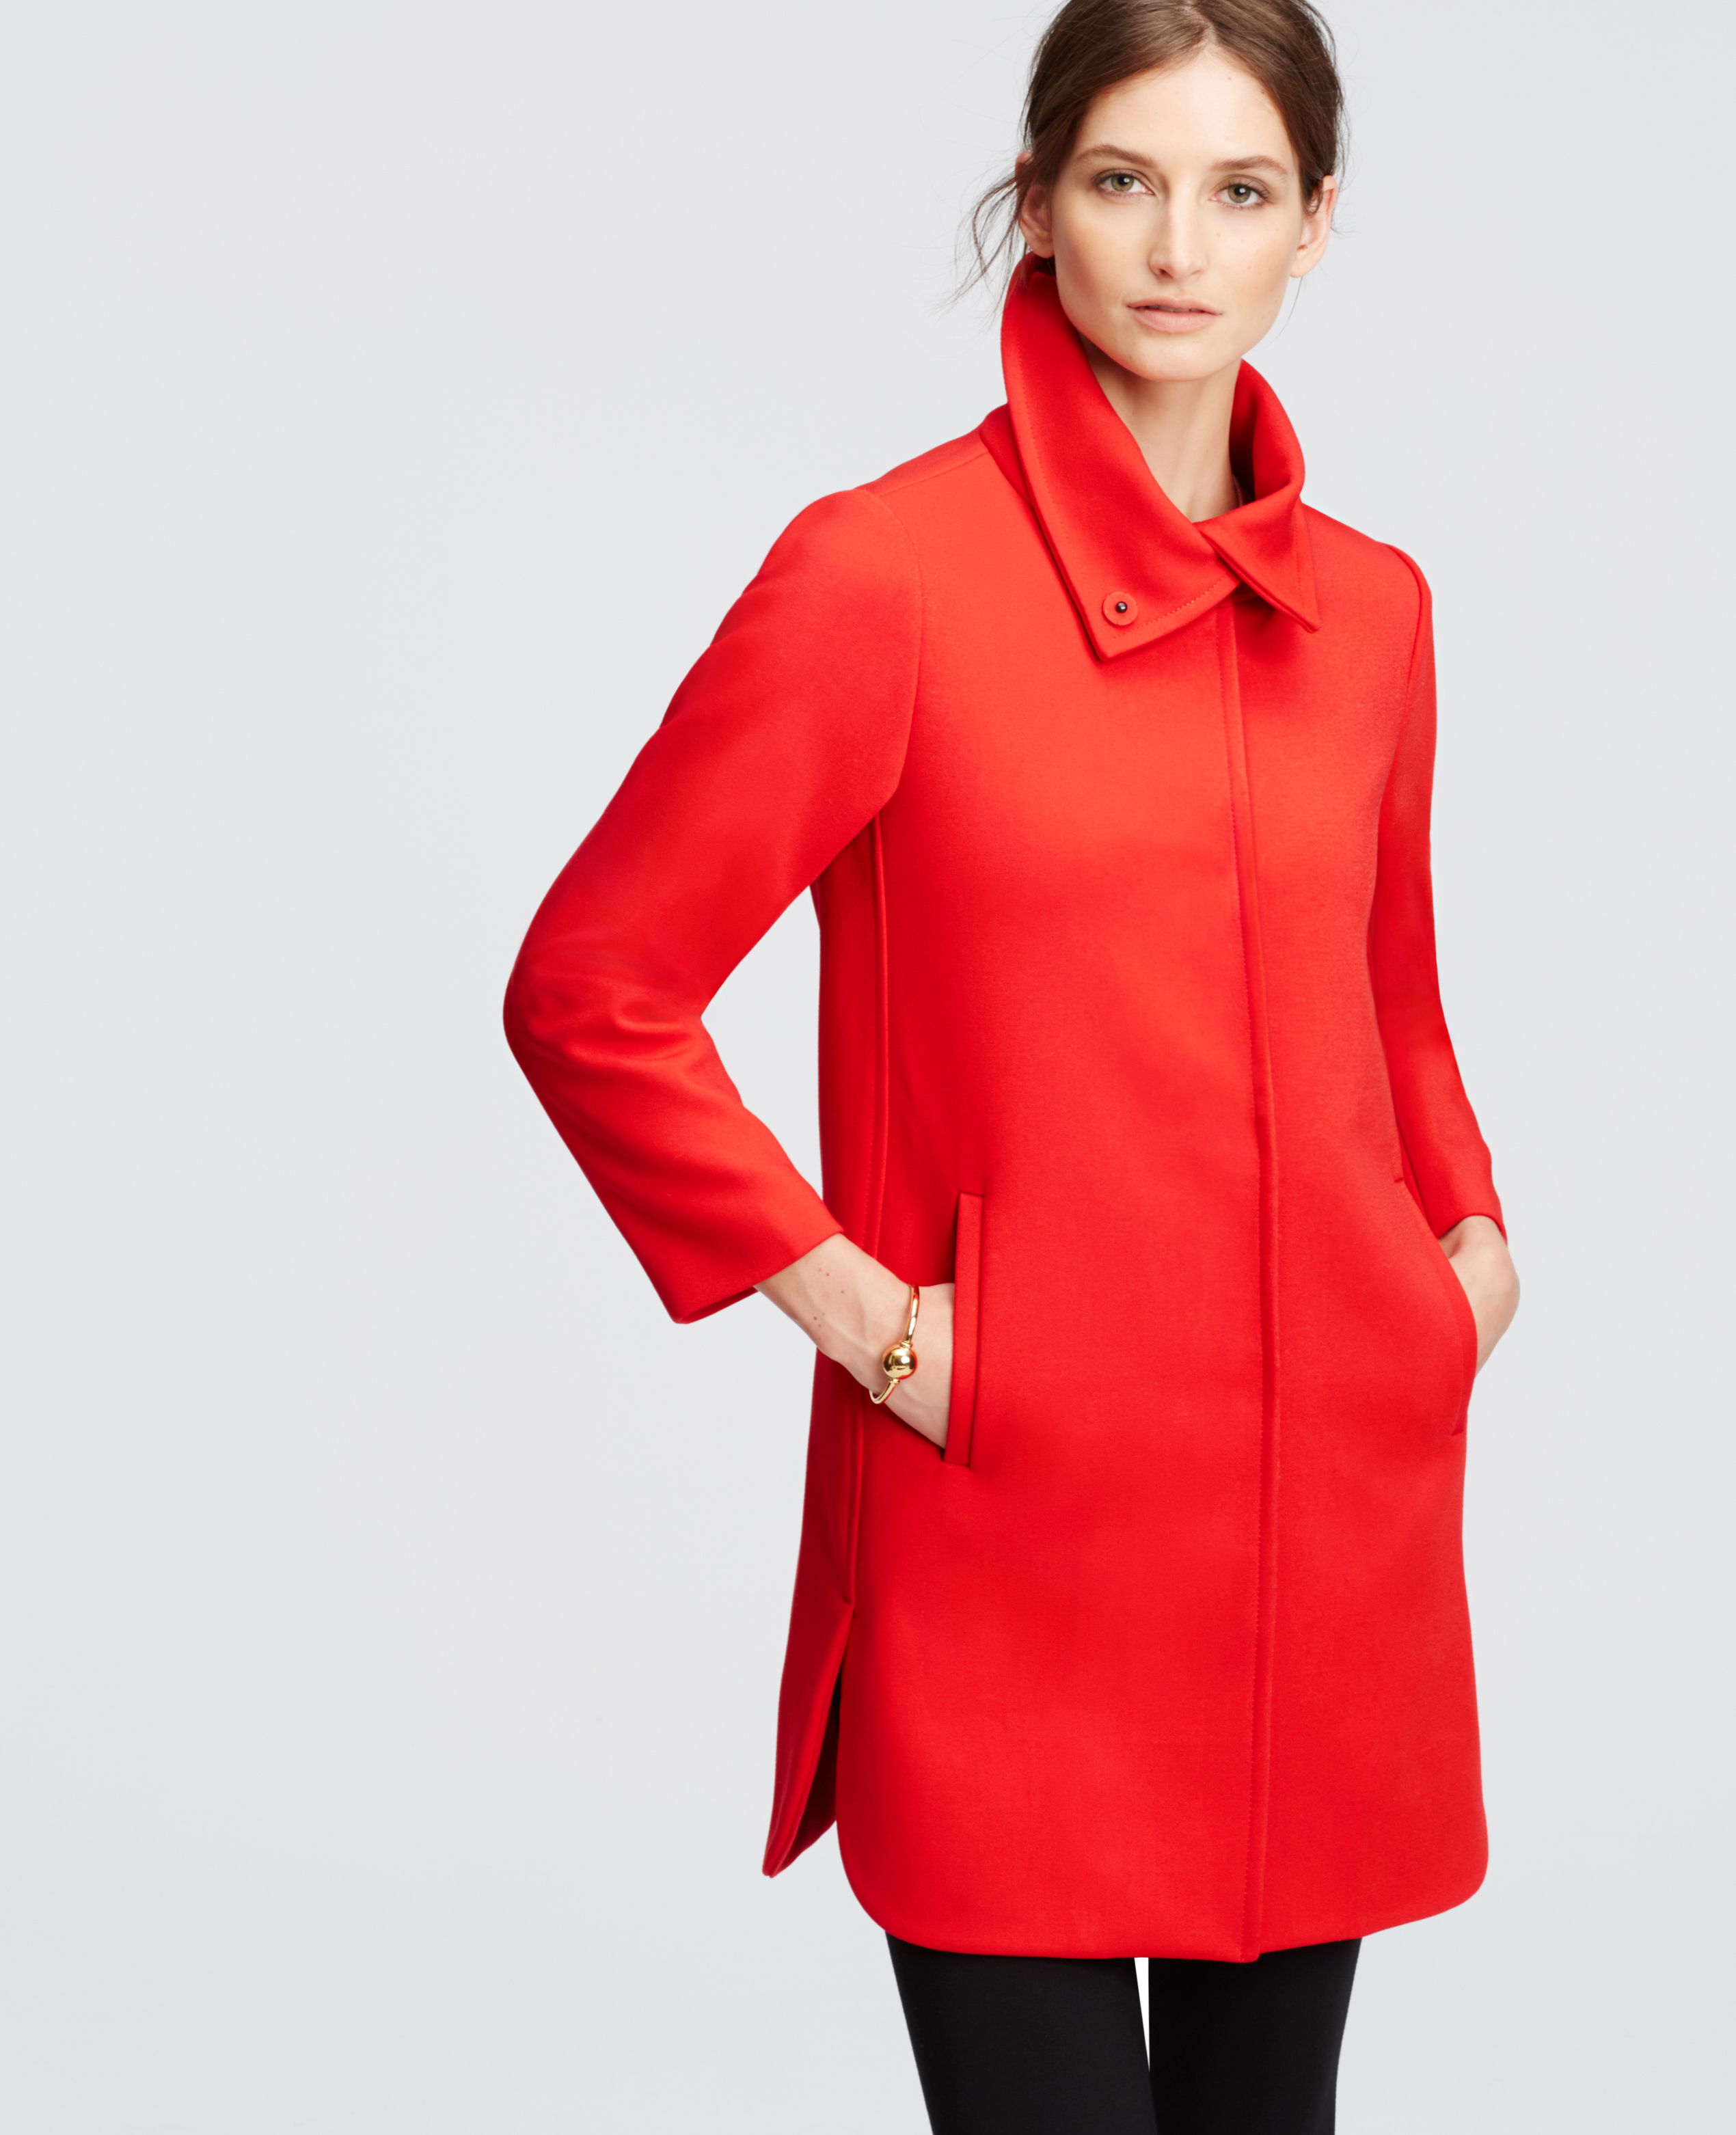 Ann taylor Petite Red Statement Coat in Red | Lyst